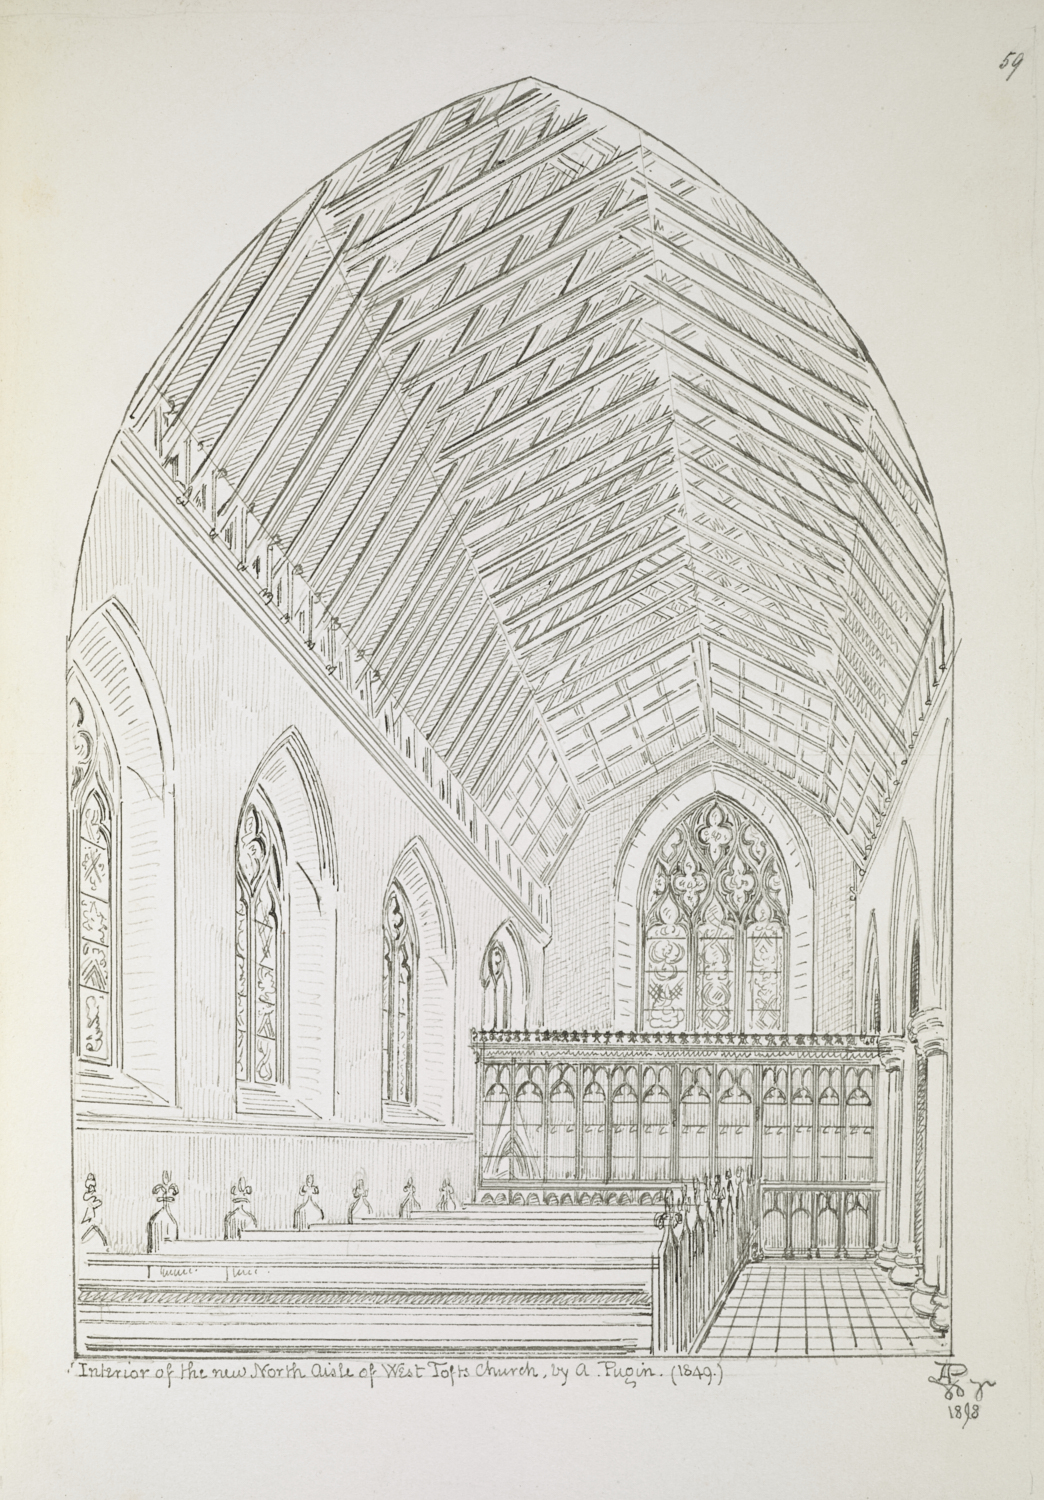 Augustus Welby Northmore Pugin (1812–52), Aisle of St Mary's, West Tofts, 1848, pencil, pen and black ink, Add MS 23061, f.59